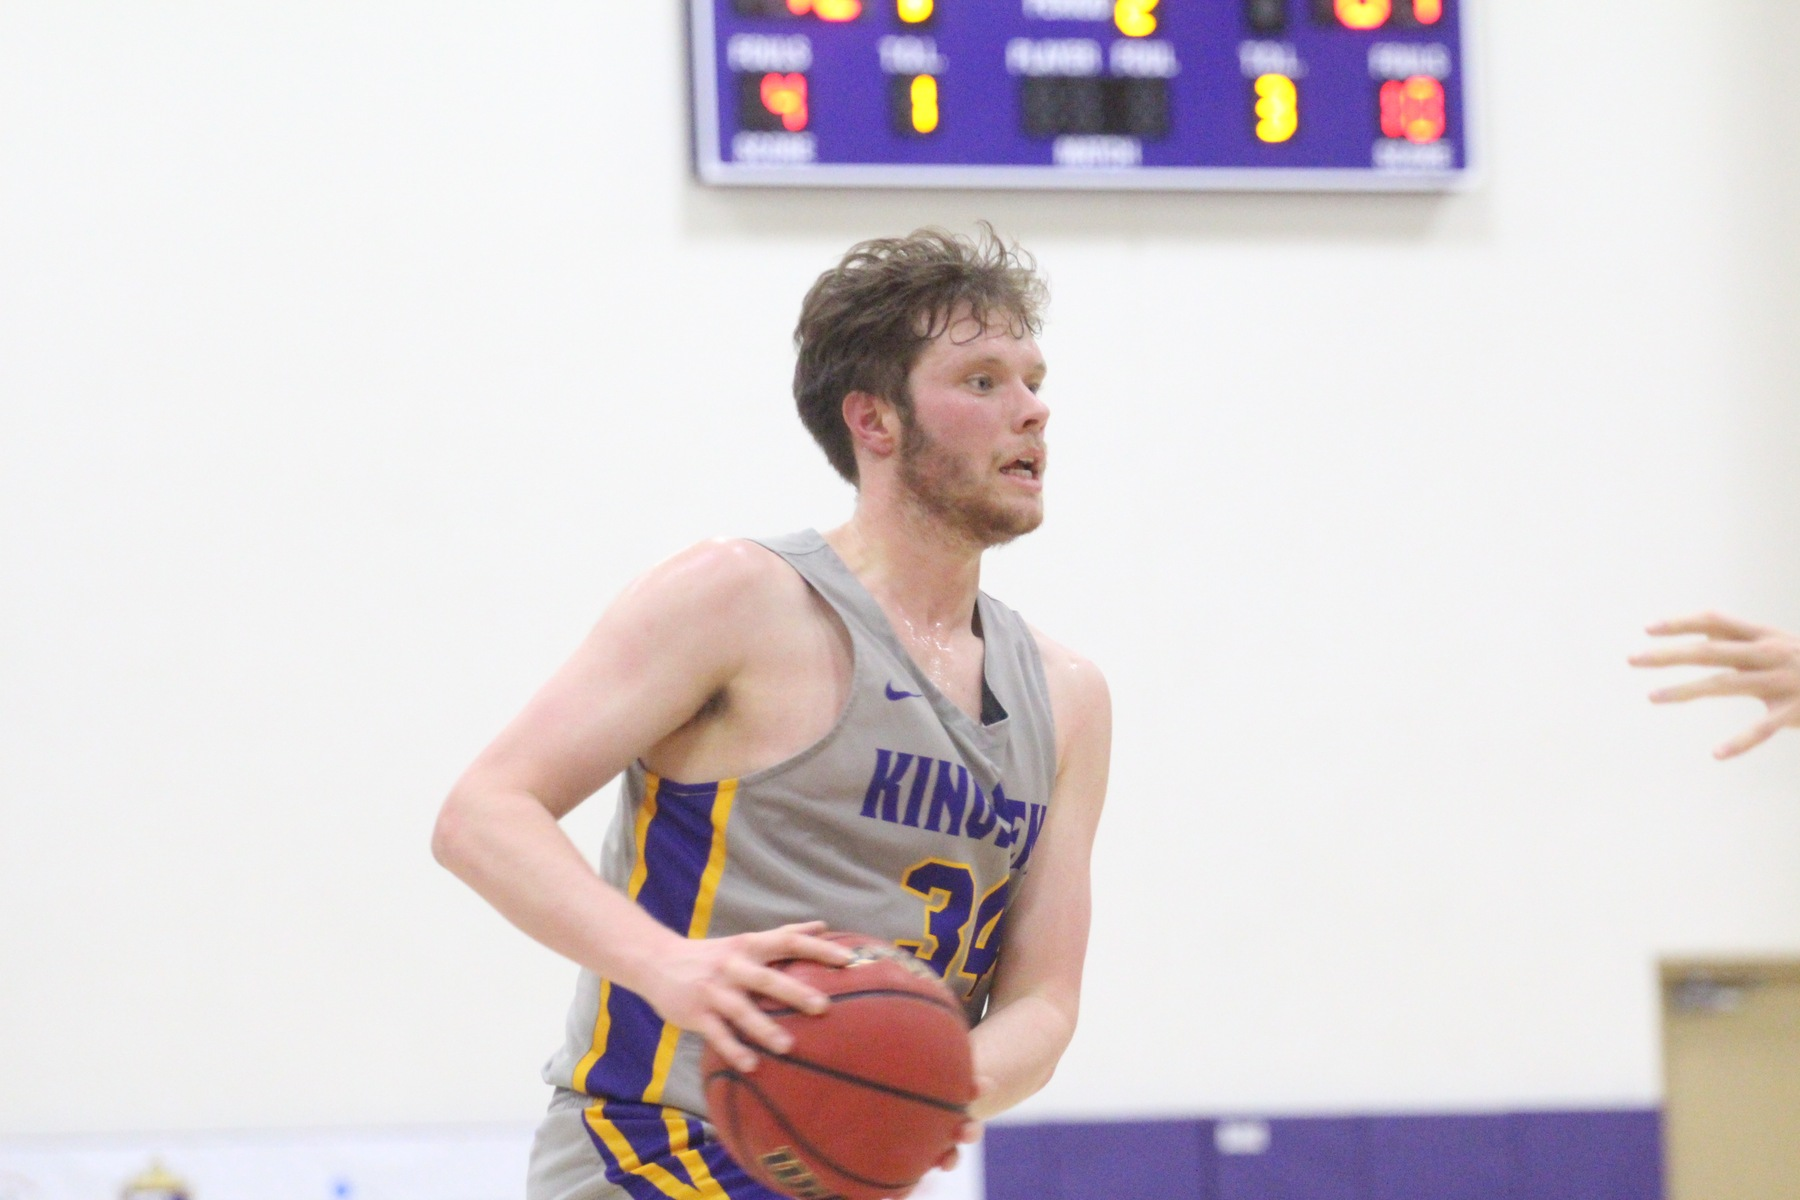 Tyler Brabant scored a career-high 15 points in the loss to Occidental.